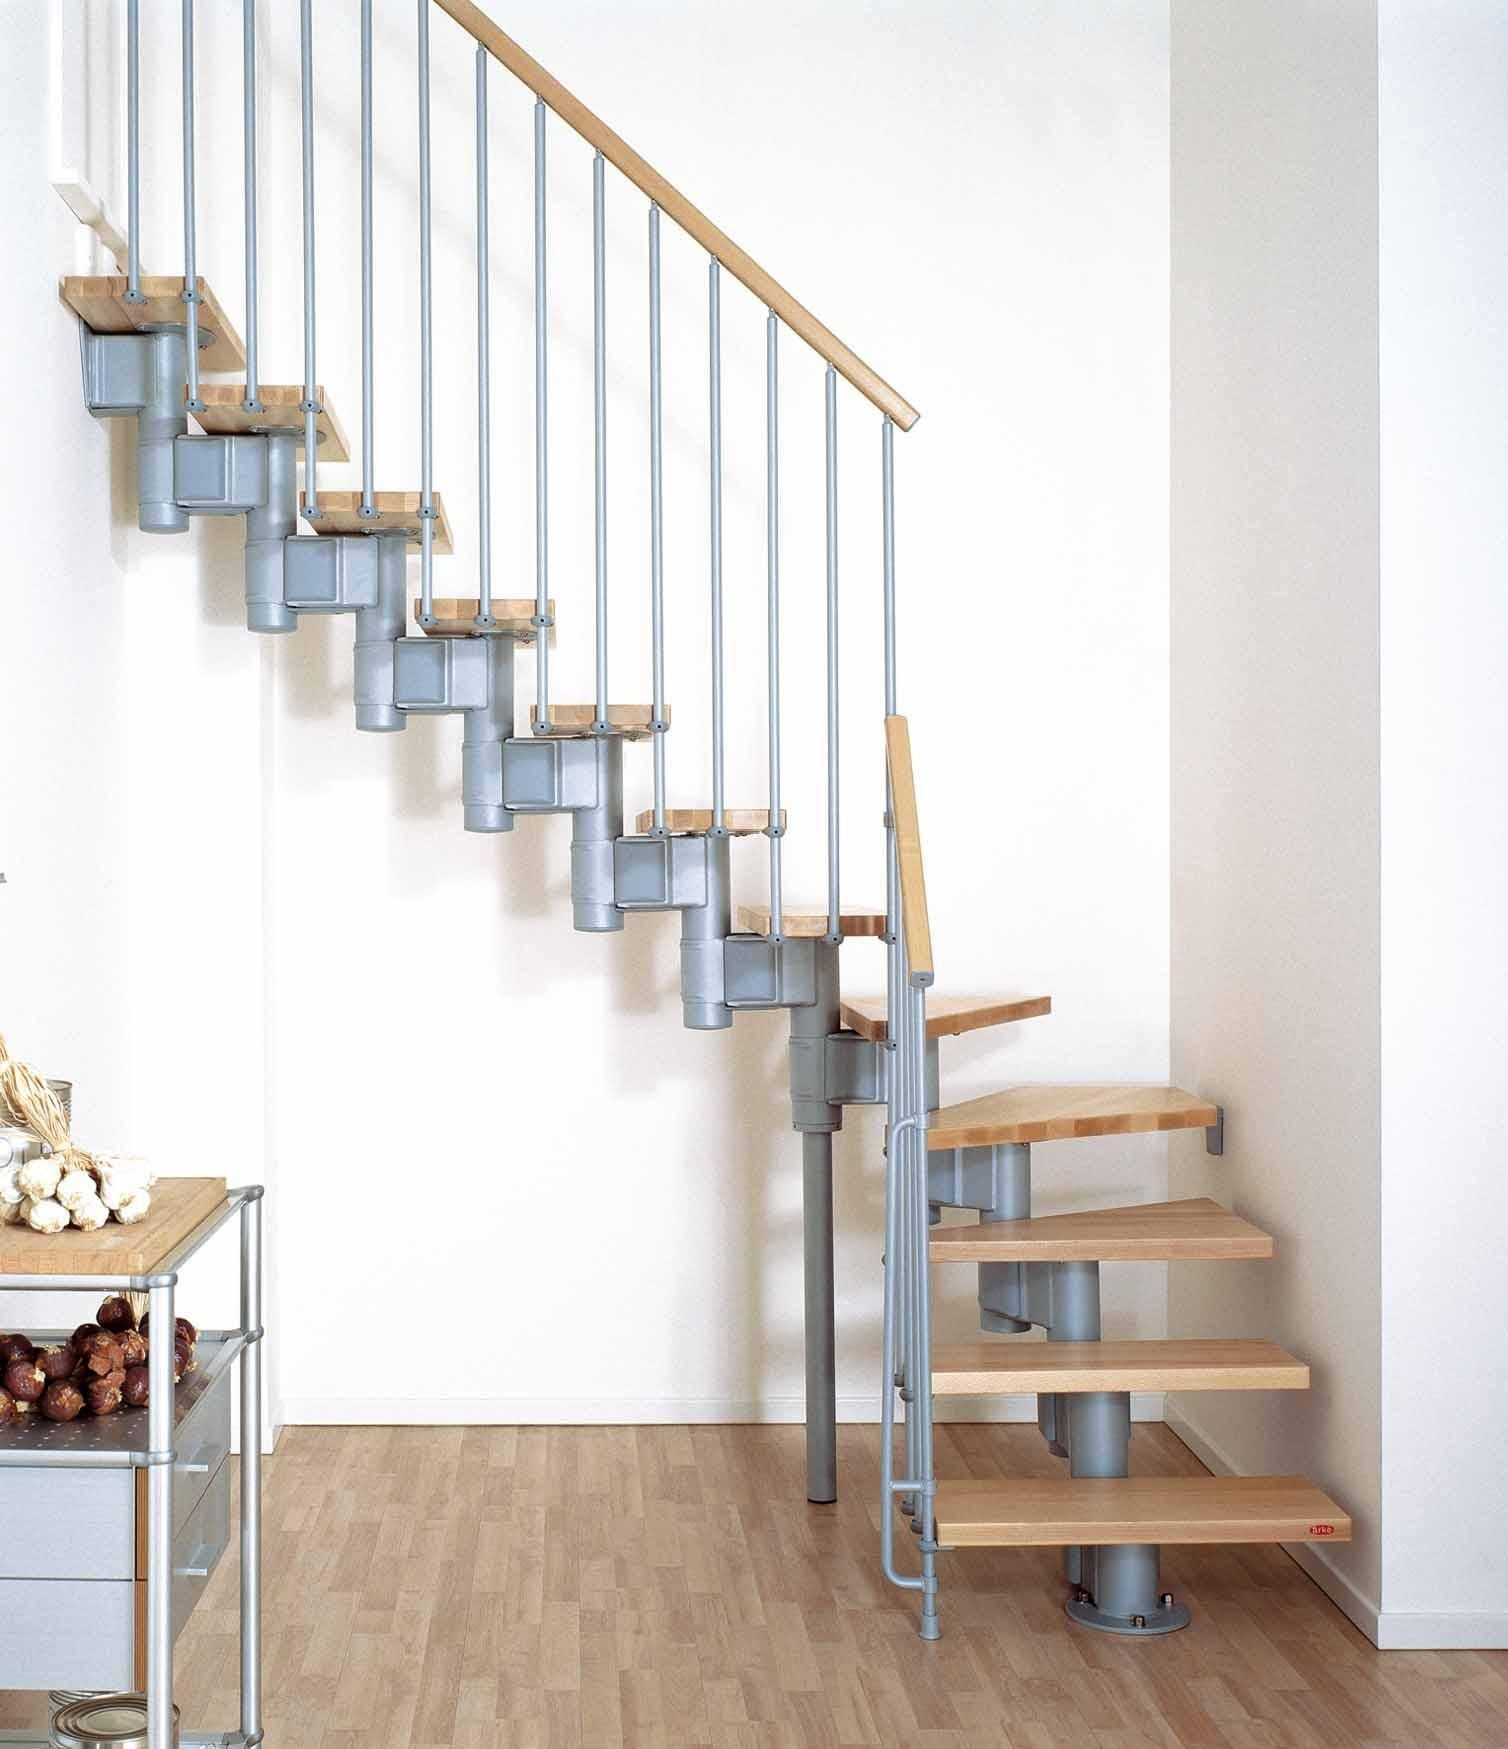 Beau Furniture : Breathtaking Spiral Staircases For Tight Spaces Staircases For  Interior With Staircase And Fance As Well Square Table And Laminate Floor  Ideas ...